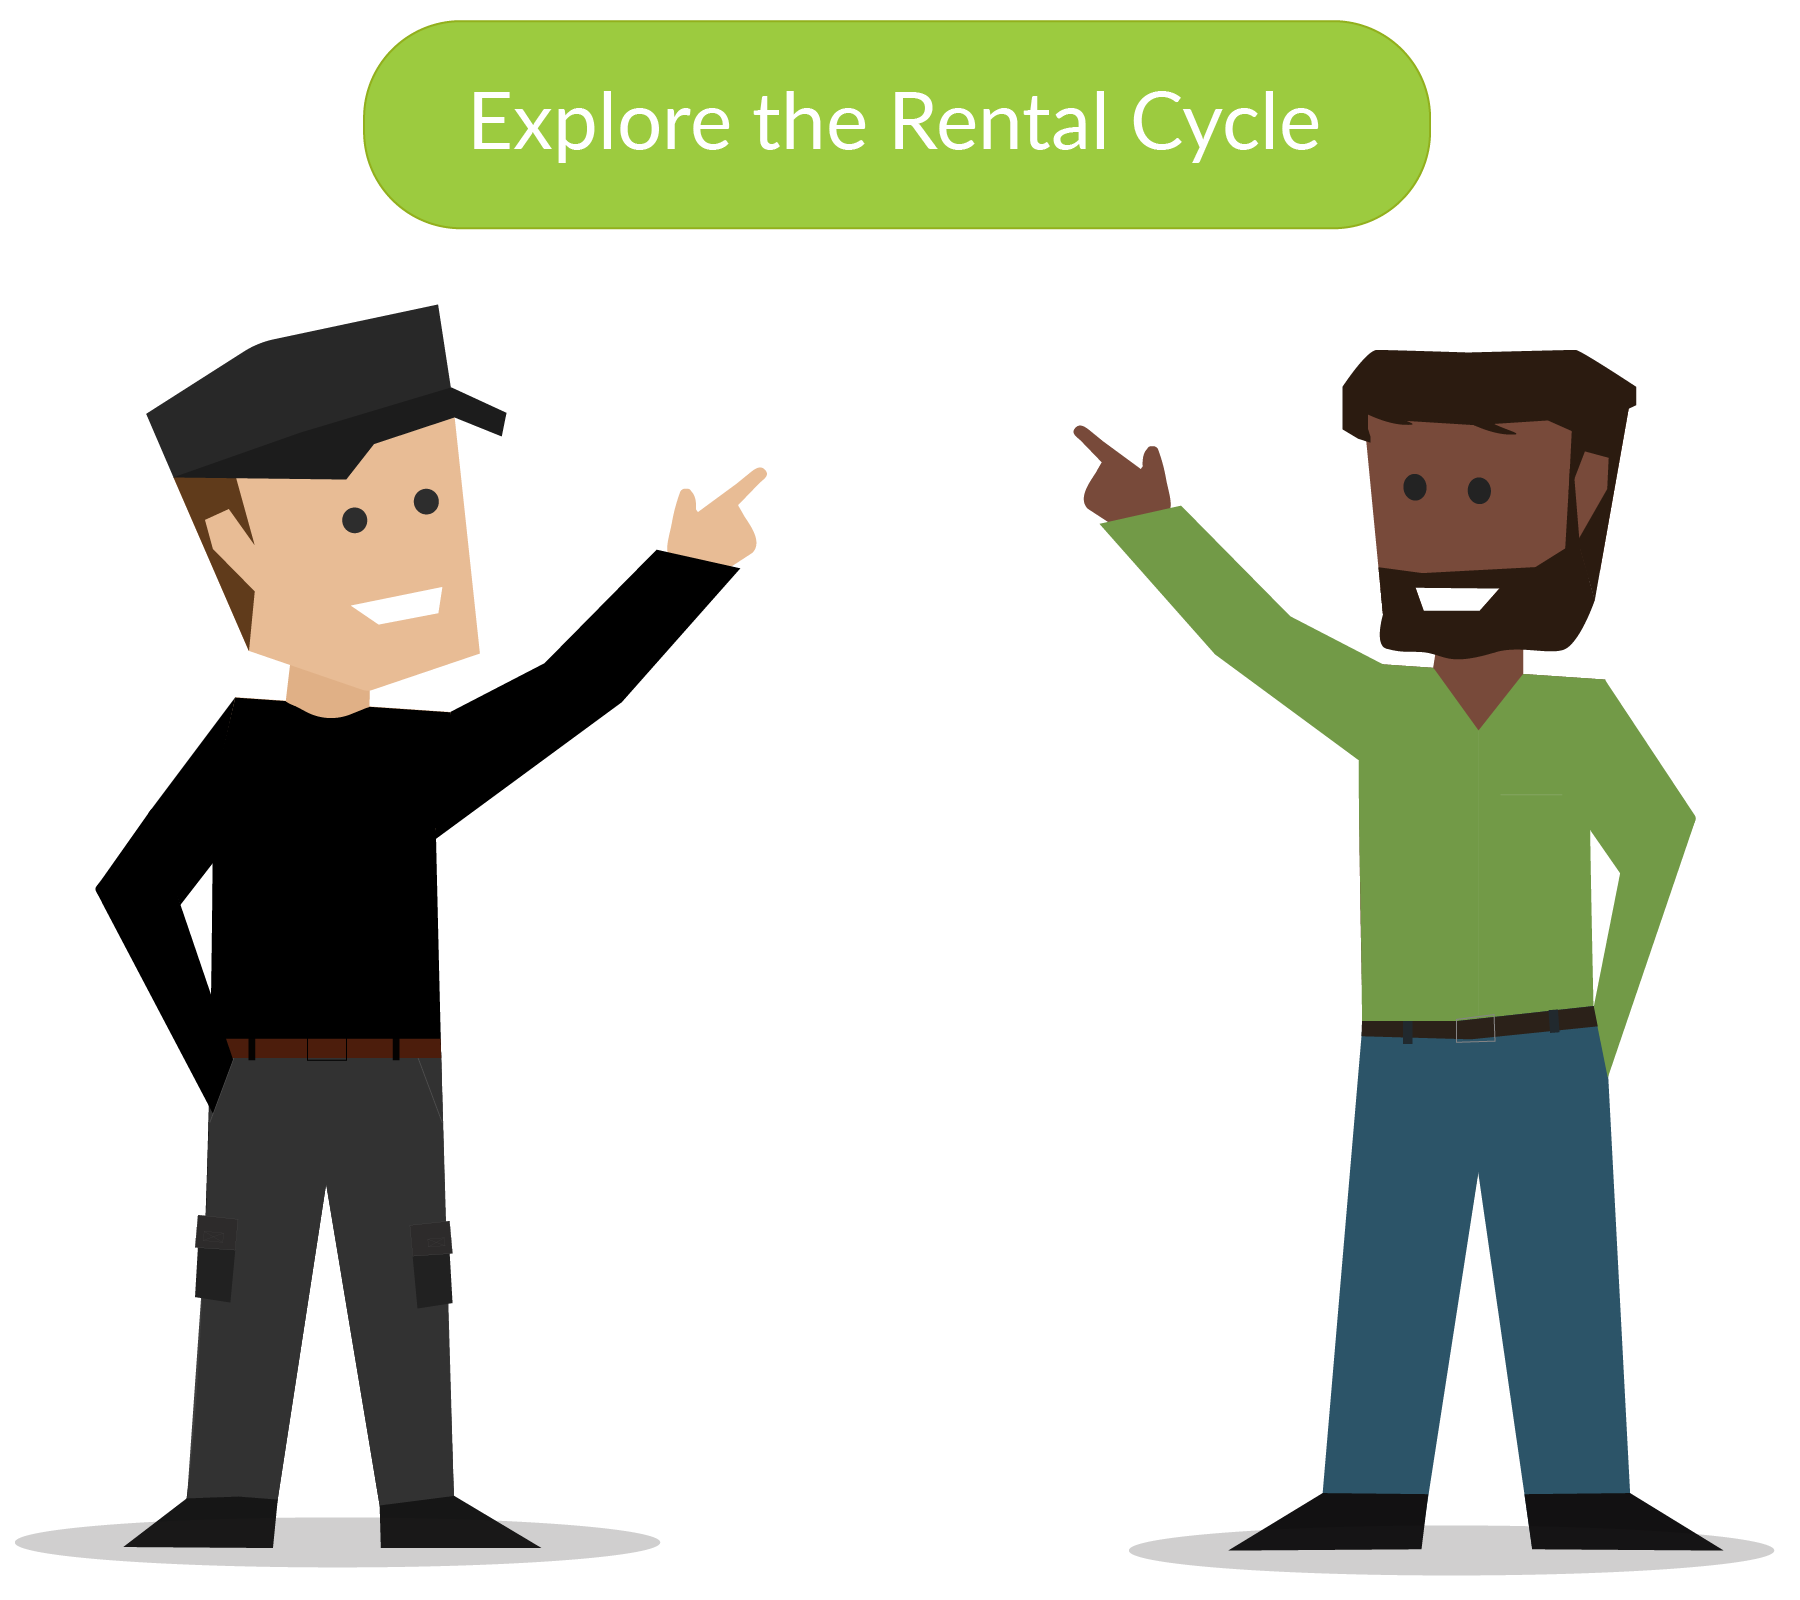 Explore the Rental Cycle